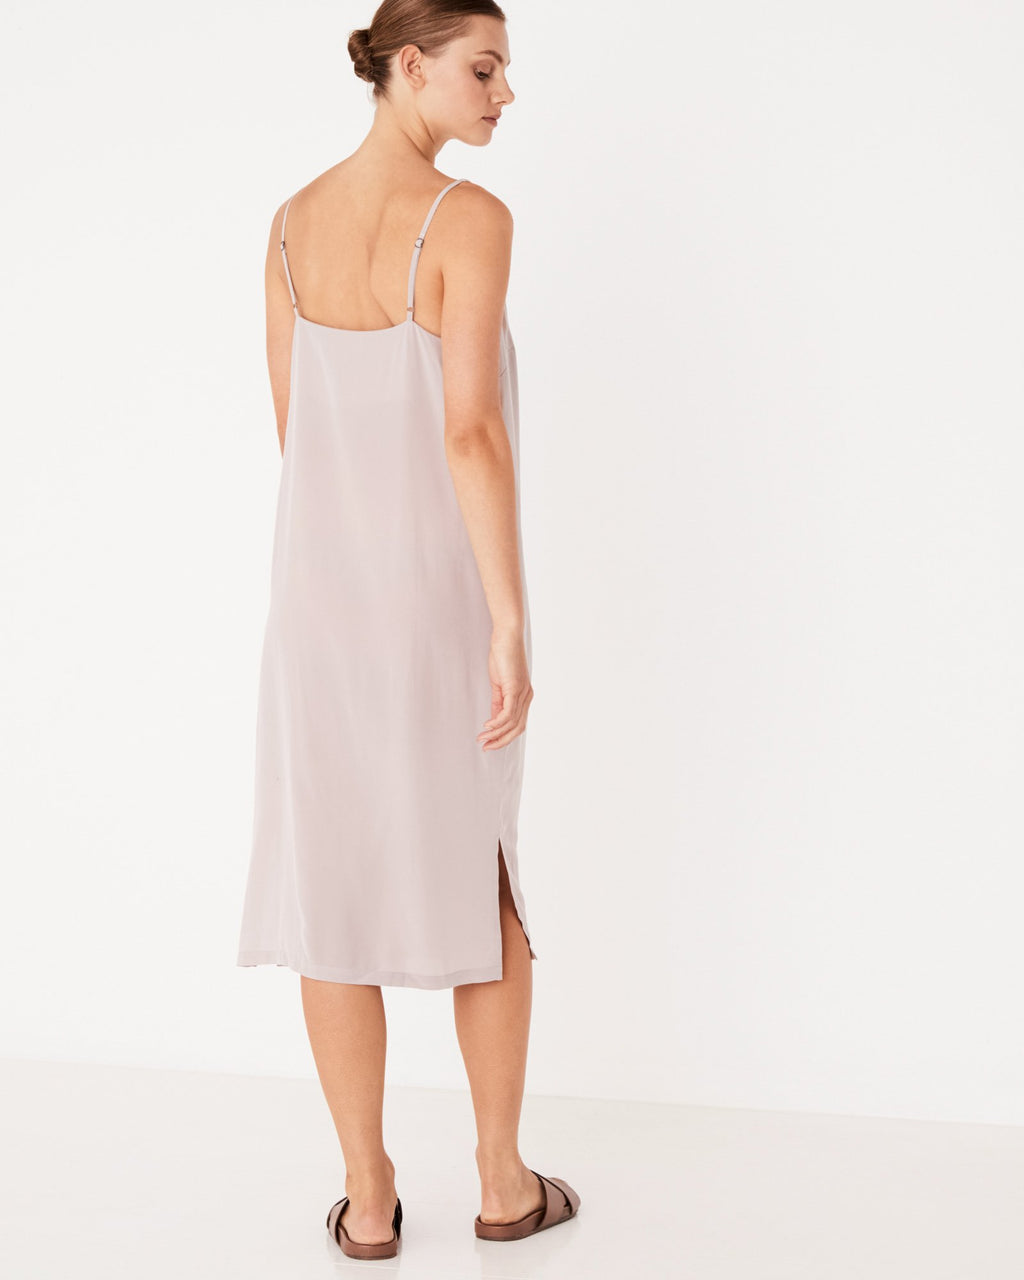 ASSEMBLY LABEL SILK DEEP V CAMI DRESS